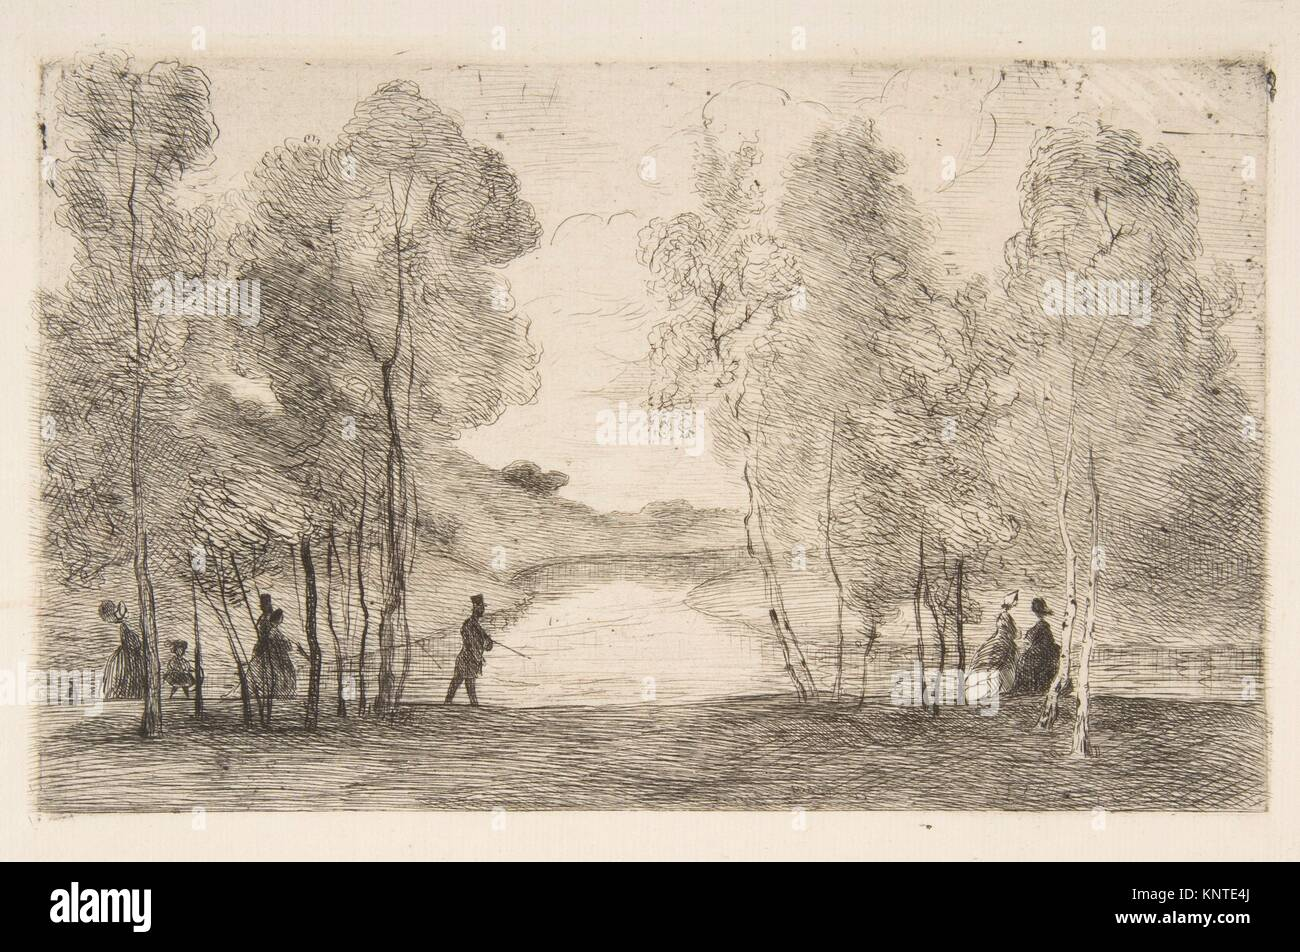 etching by felix bracquemond stock photos etching by felix bracquemond stock images alamy. Black Bedroom Furniture Sets. Home Design Ideas